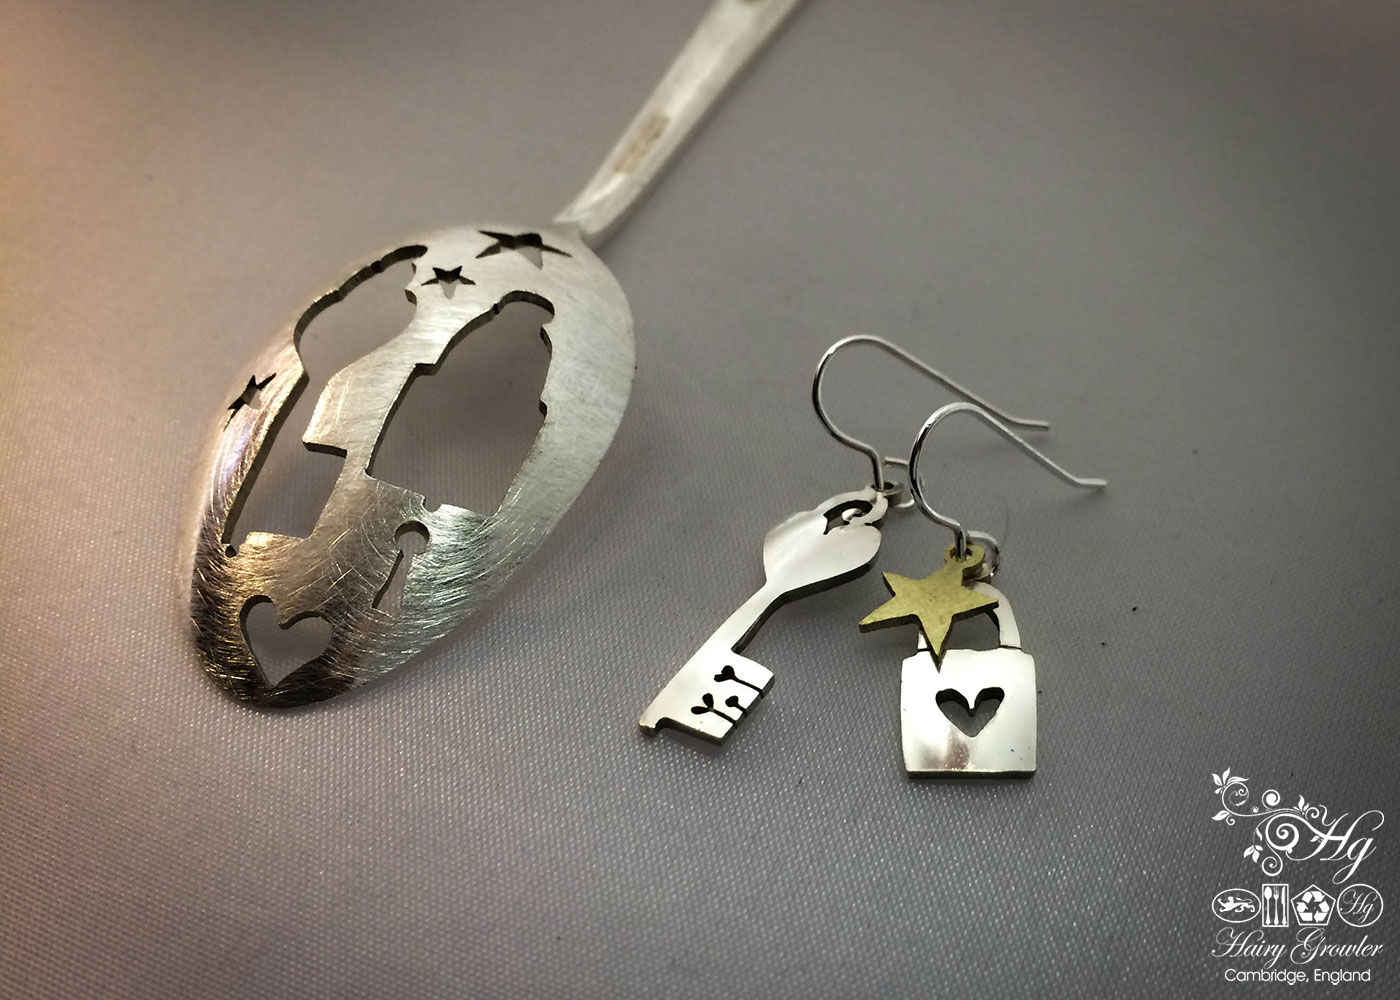 handcrafted and recycled spoon lock-and-key earrings